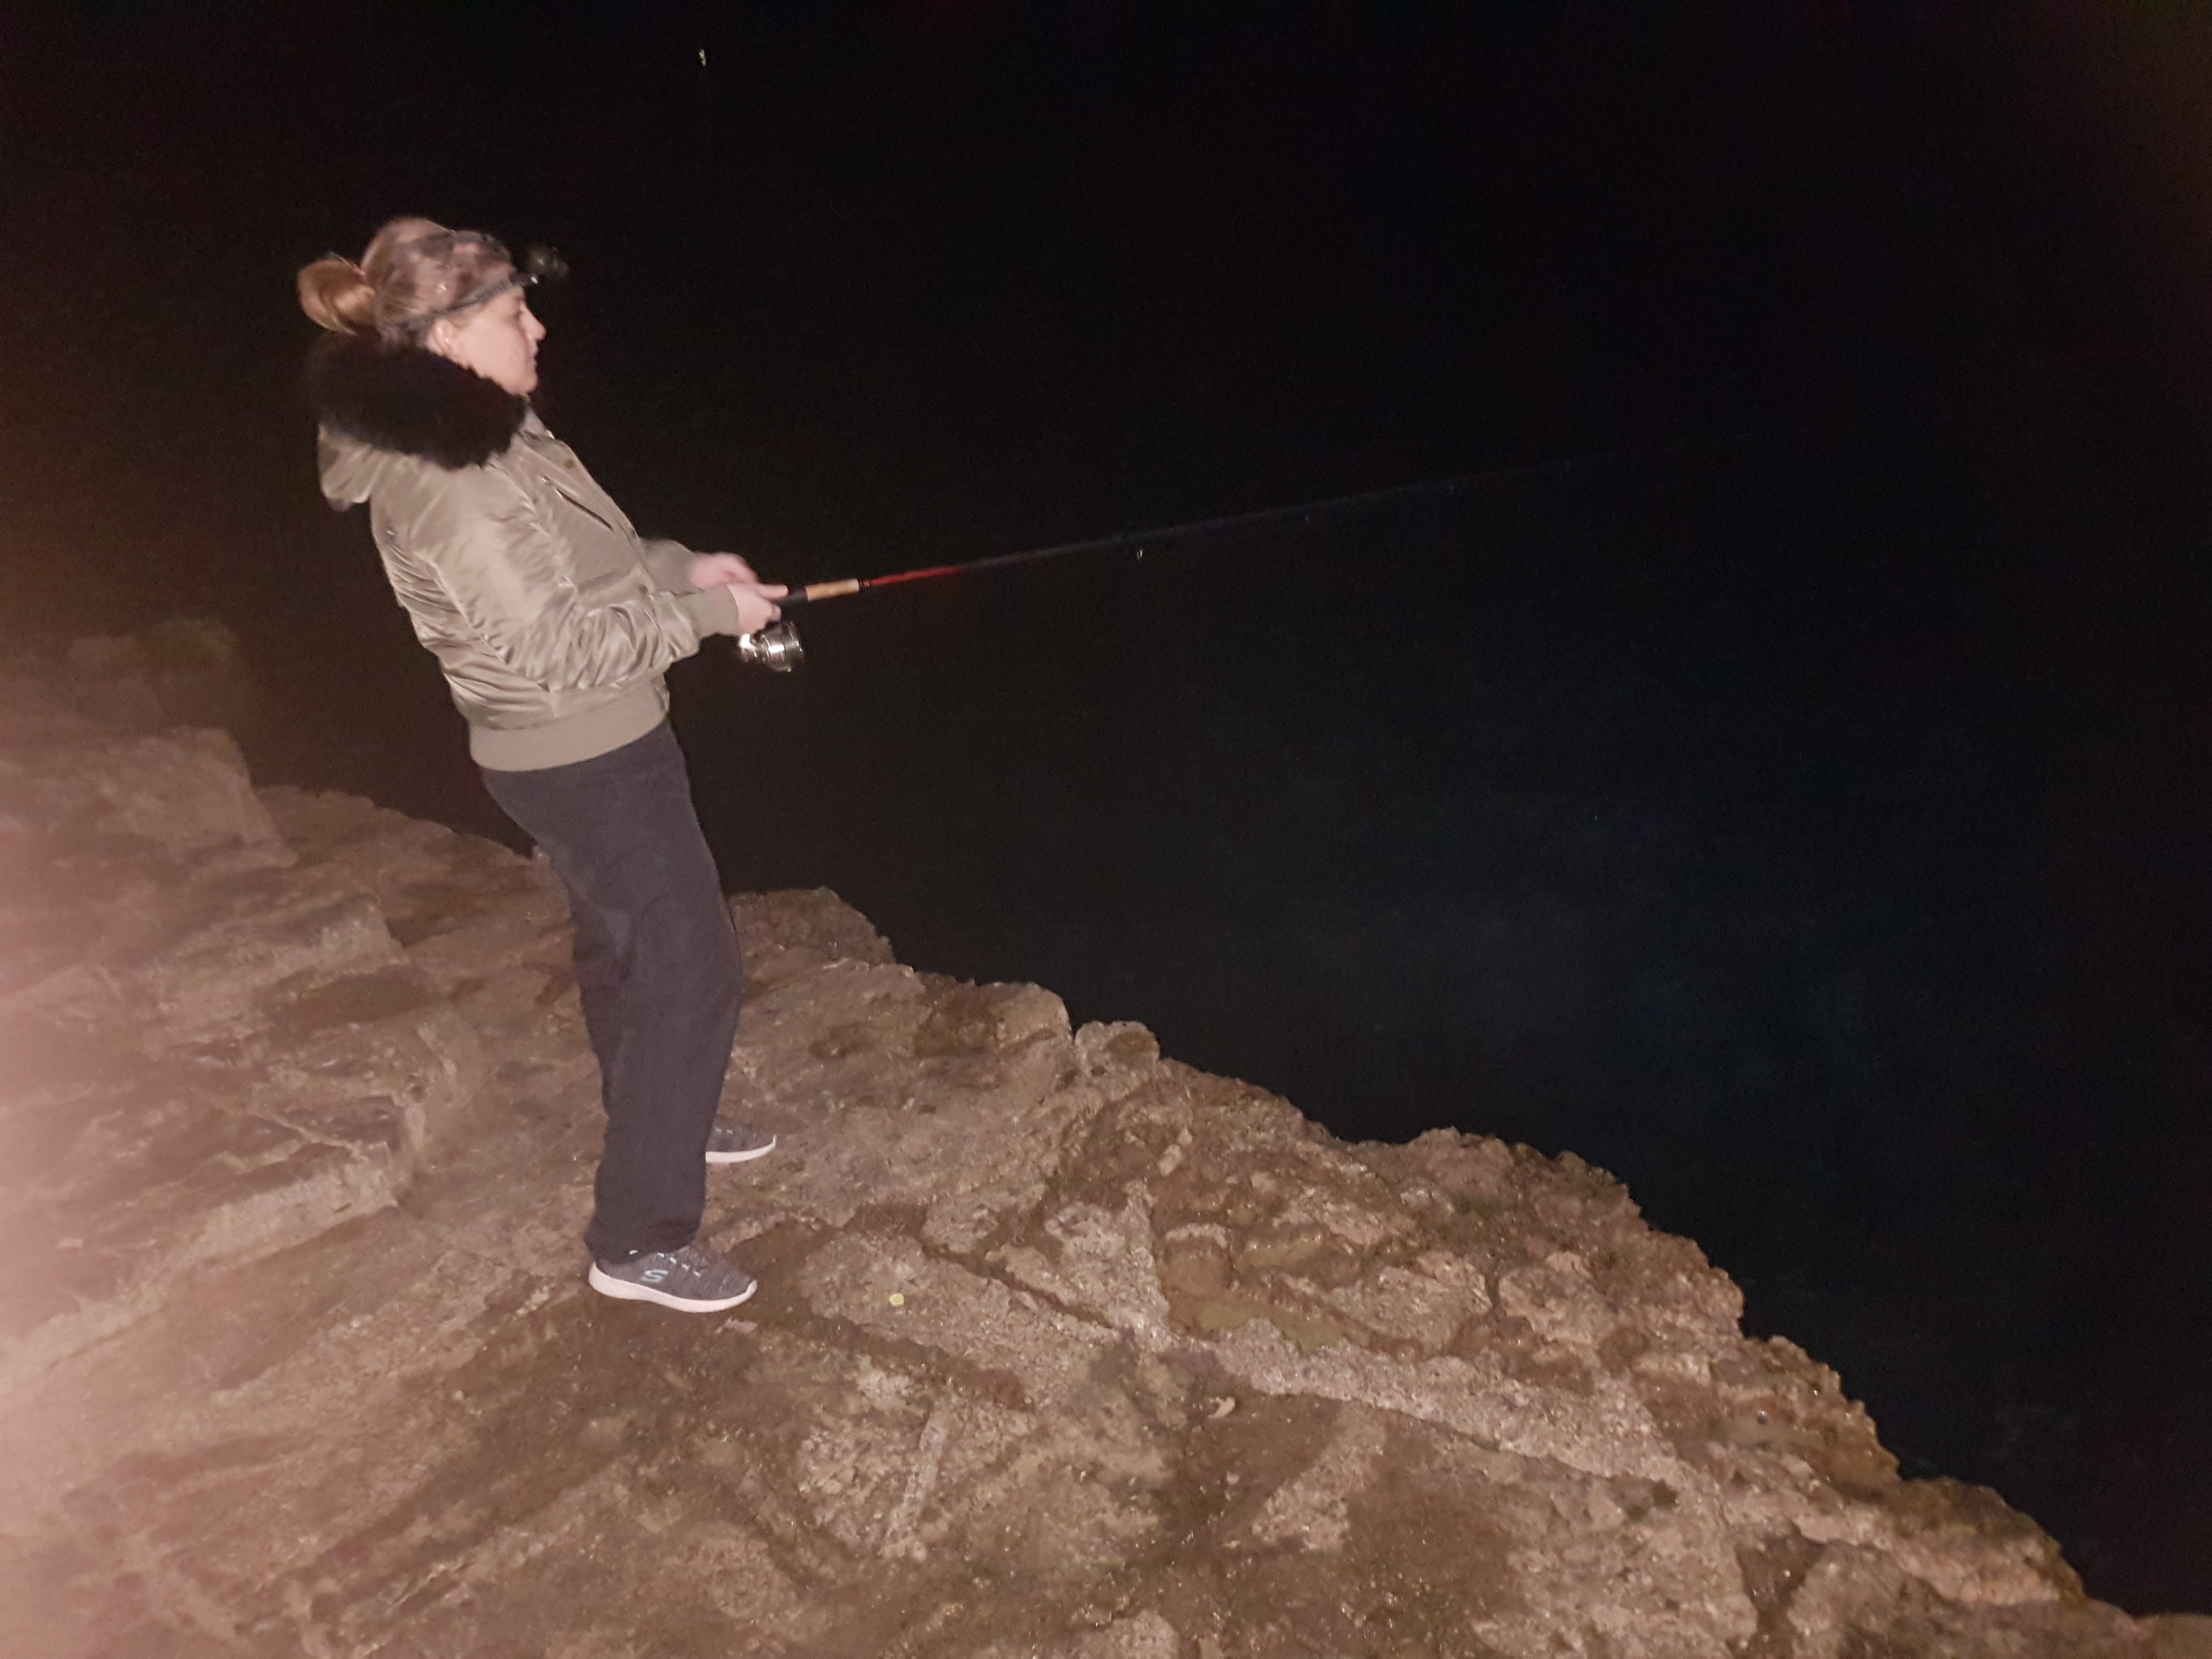 CATCHING SQUID FROM SHORE IN PULA